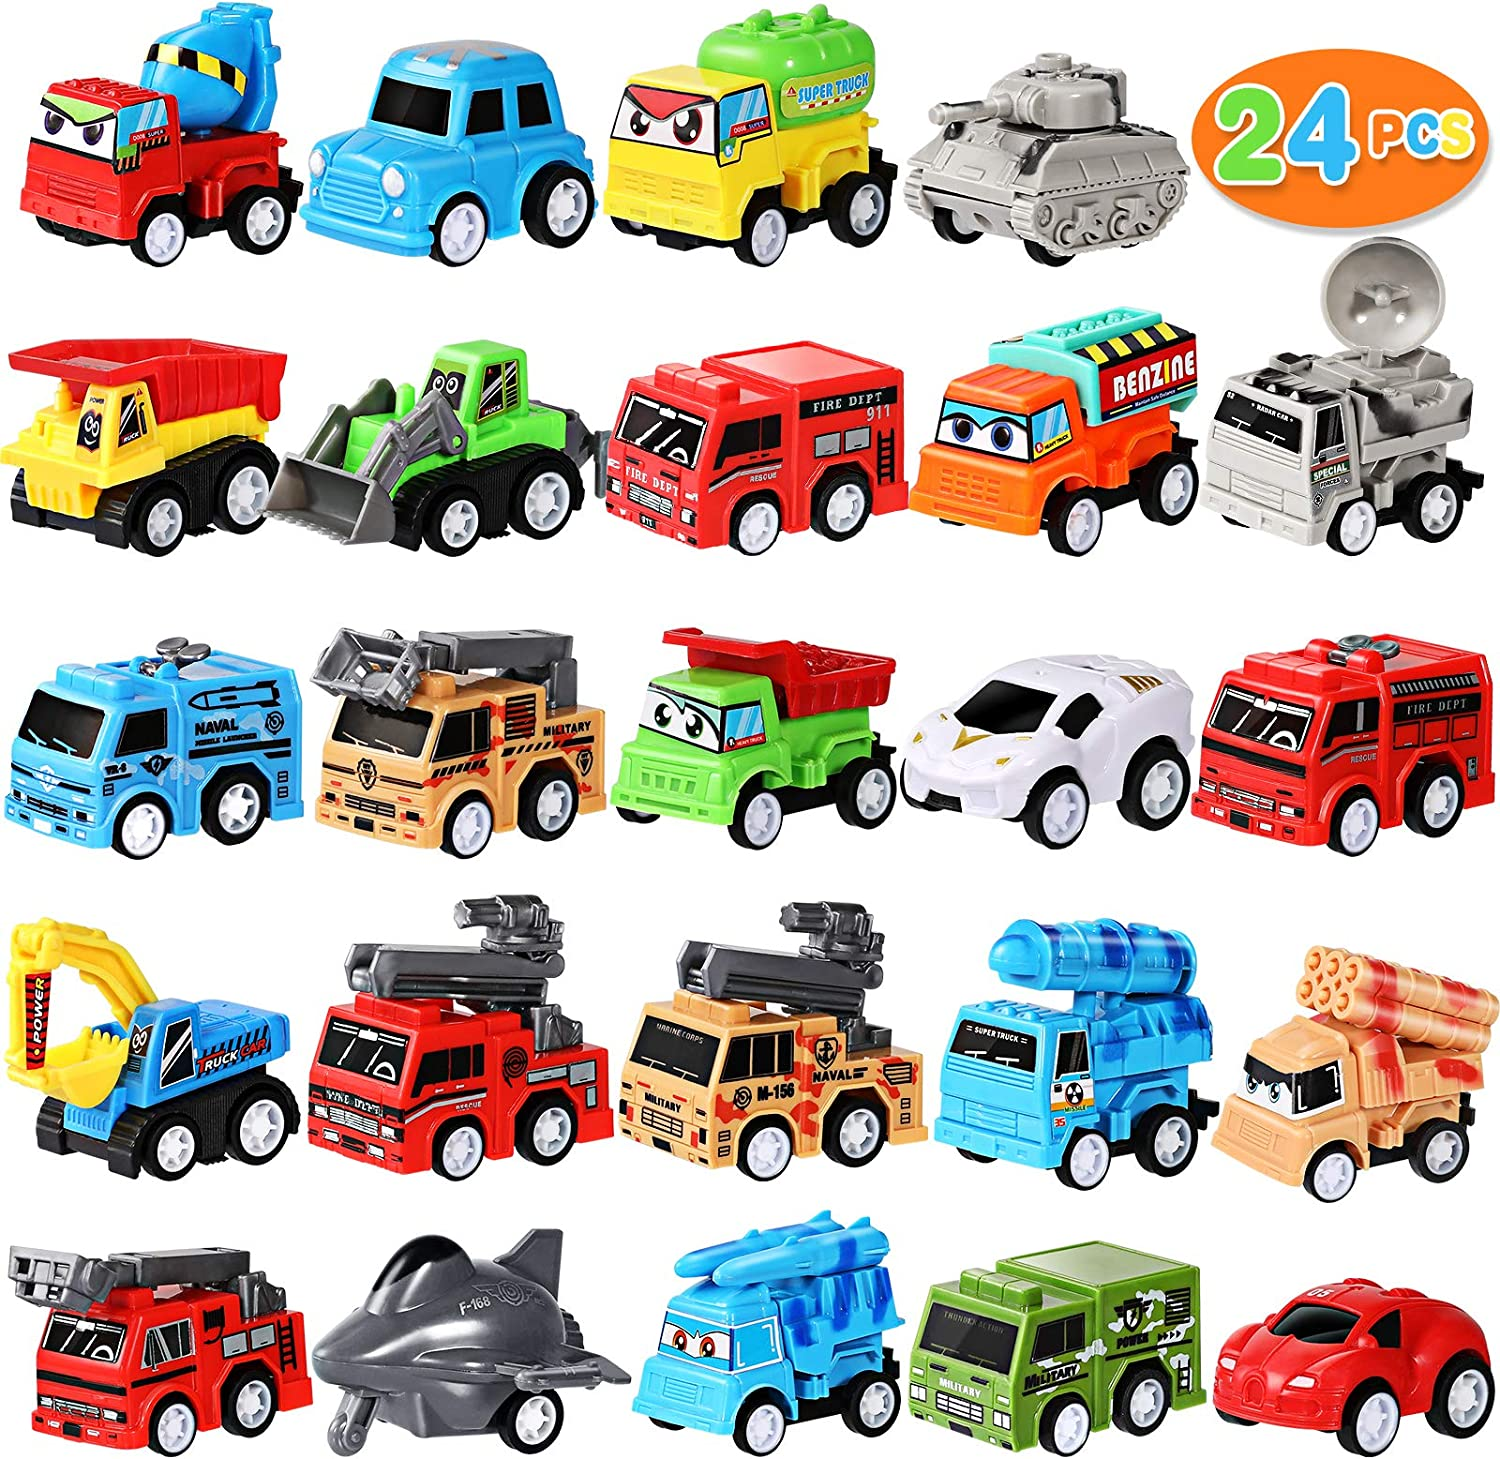 MGparty 24 Pieces Mini Pull Back City Cars and Trucks Toy Vehicles Set for Kids Children Party Favors Birthday Game Supplies